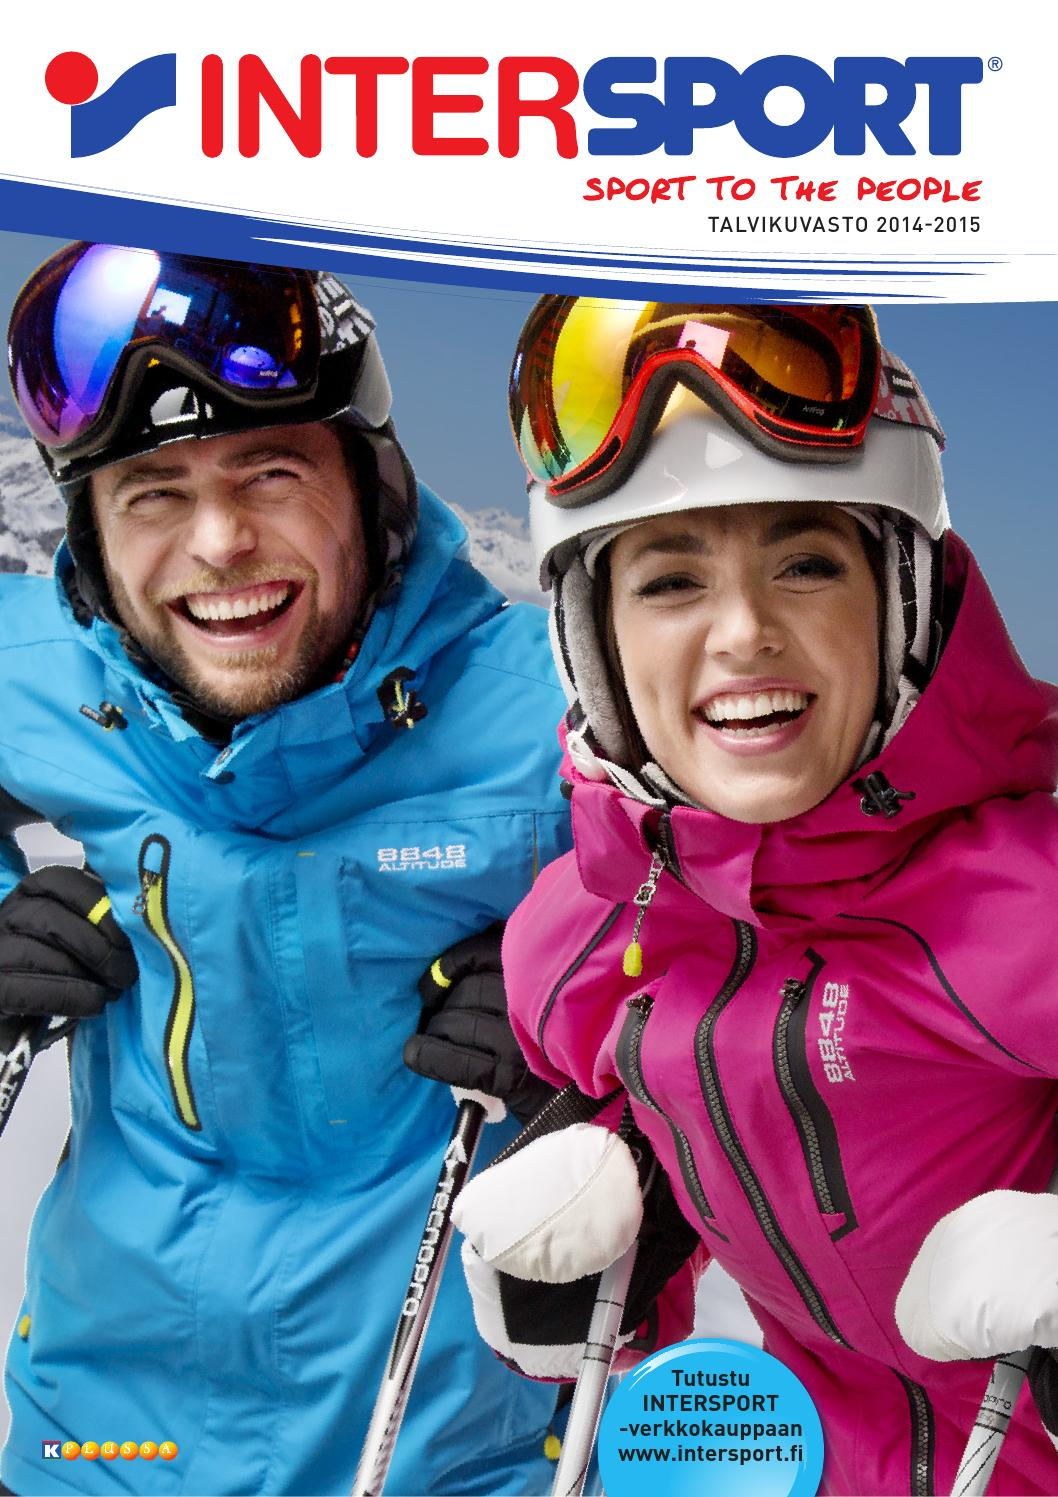 Intersportin talvikuvasto by intersport finland issuu